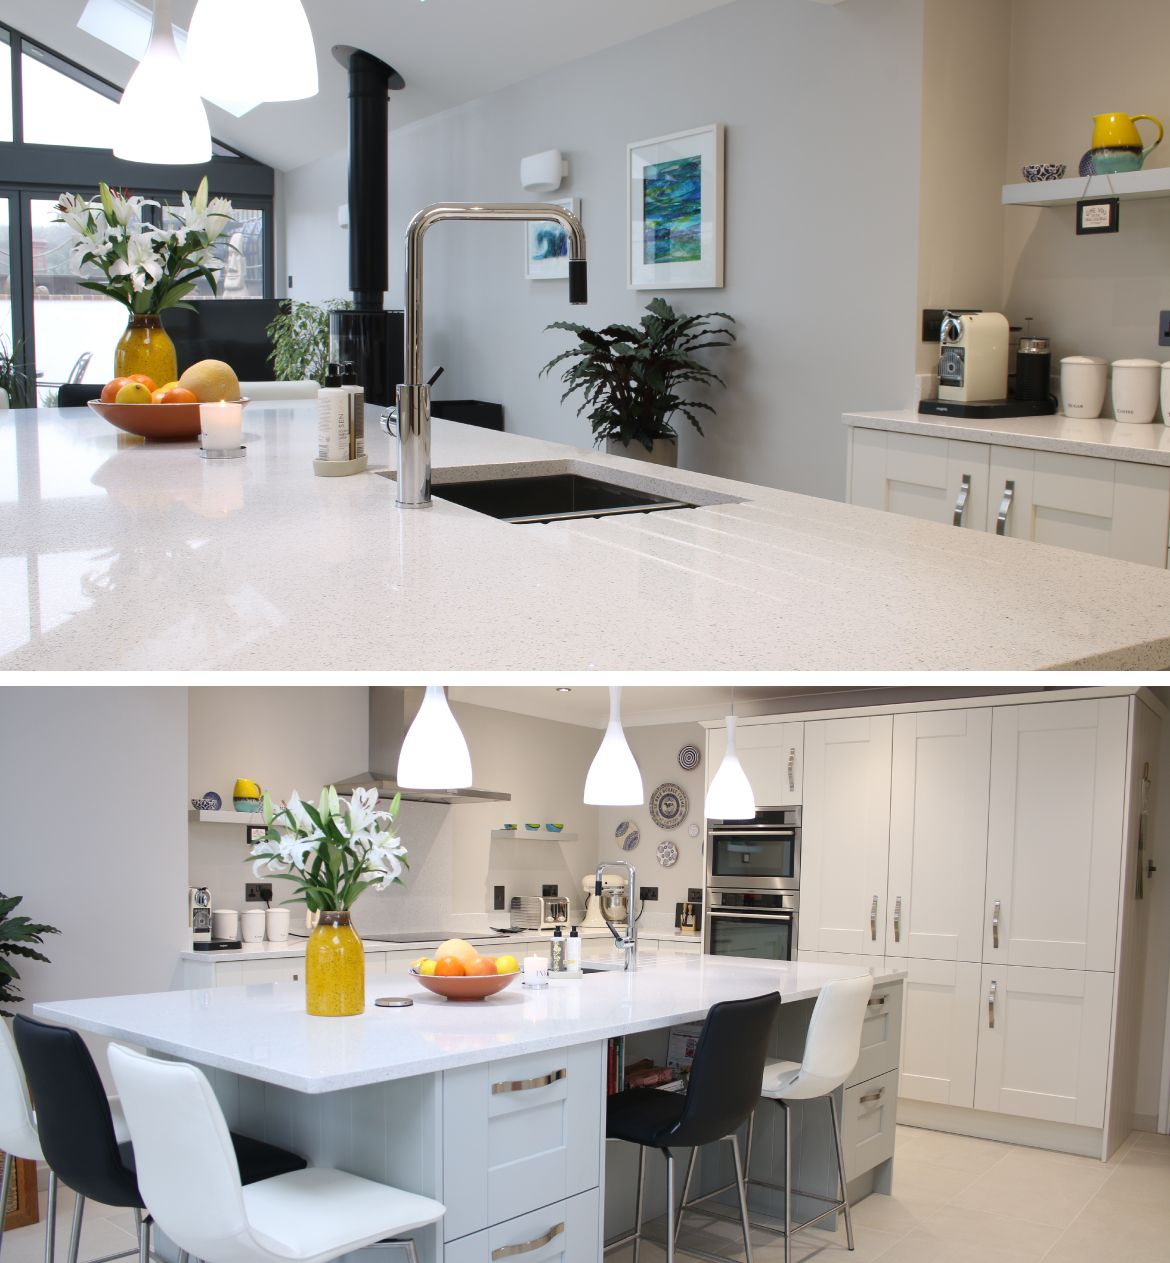 Exceptionnel St Dominic, Cornwall As Part Of A Large Modern Extension The Customer  Wanted A Modern Kitchen With A Classic And Timeless Feel. They Came To Simply  Kitchens ...